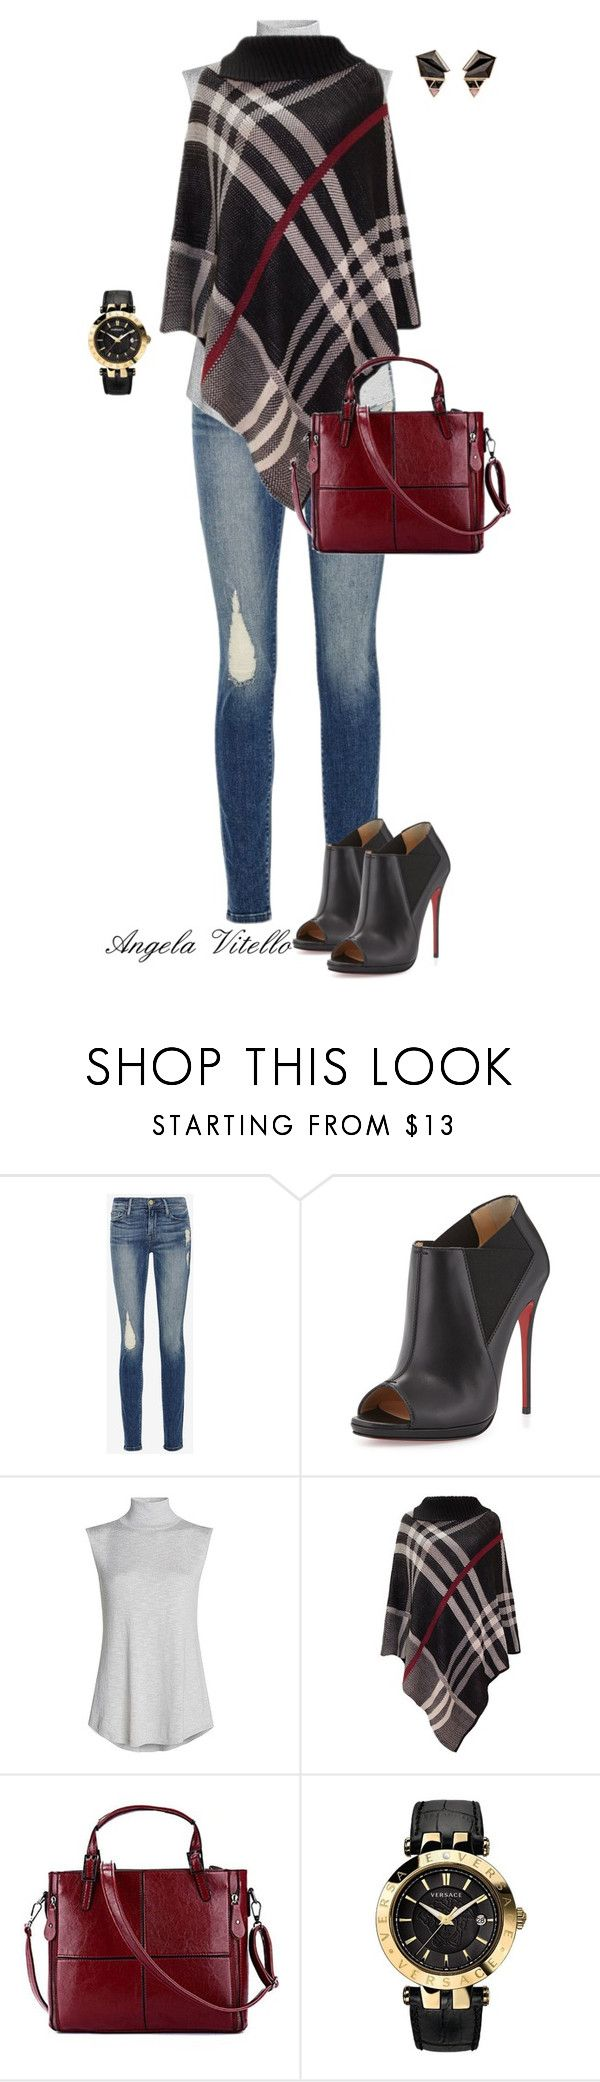 """Untitled #630"" by angela-vitello on Polyvore featuring Frame Denim, Christian Louboutin, NIC+ZOE, Versace and Nak Armstrong"